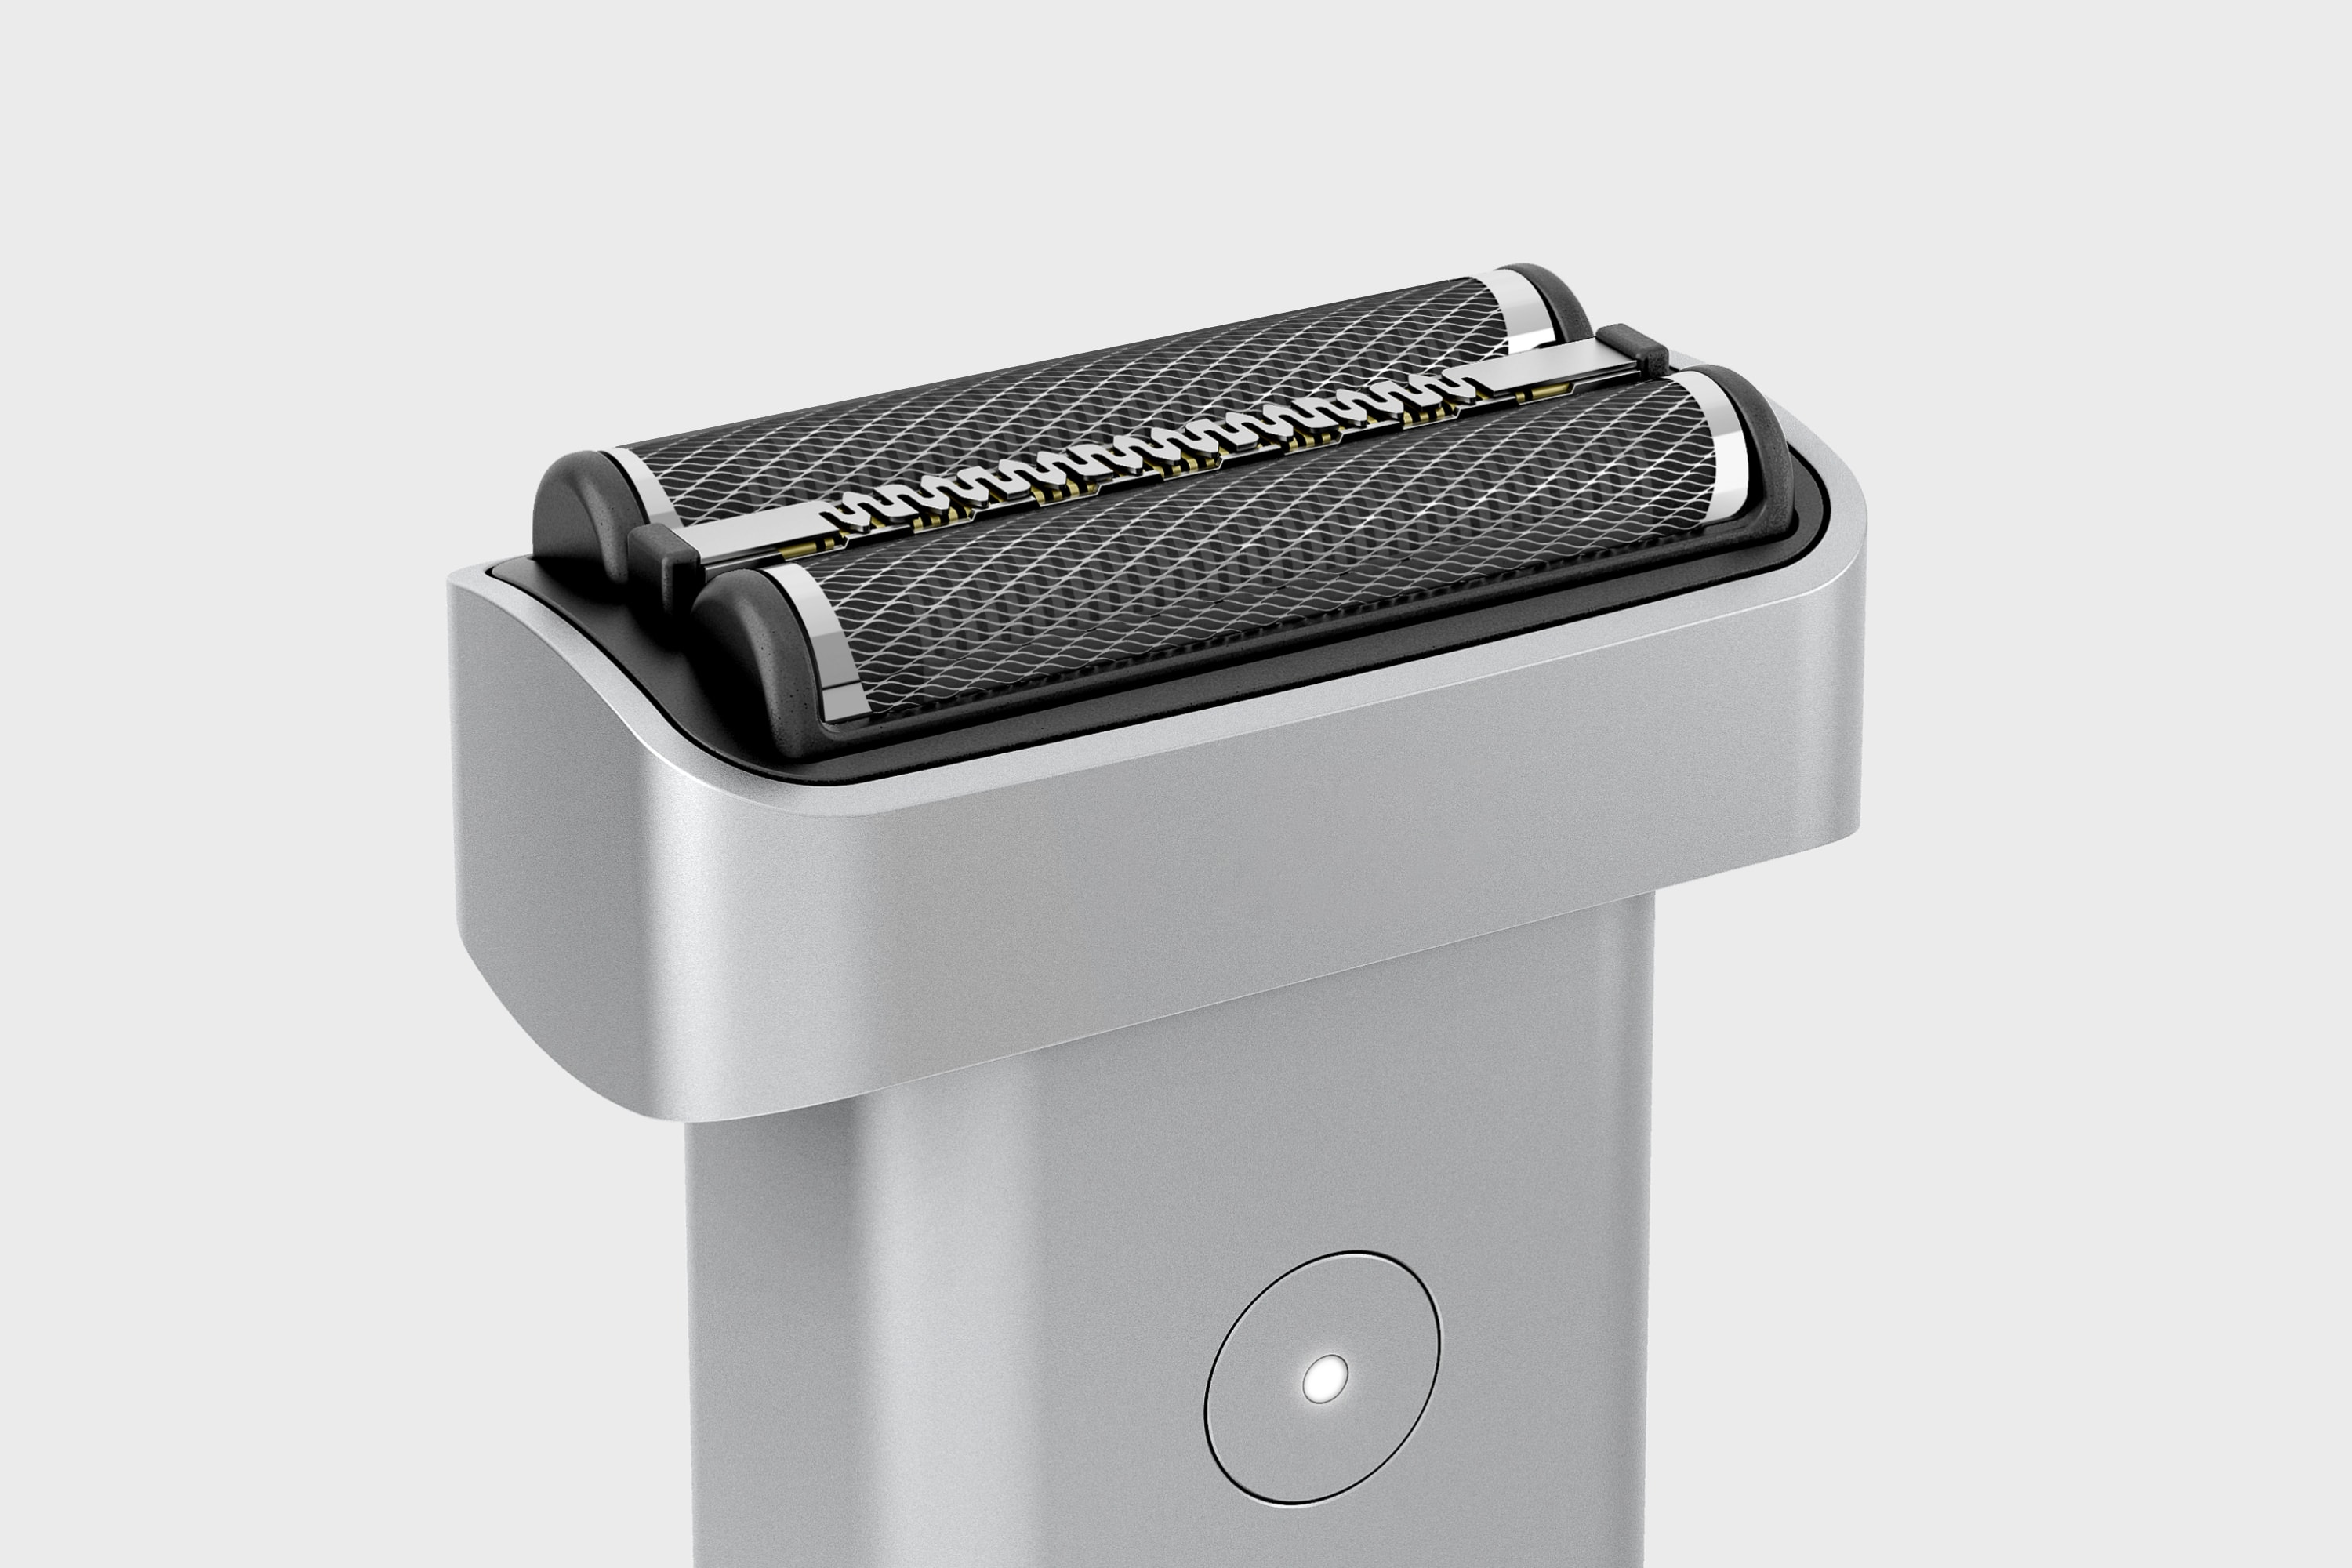 Isometric view of the Extrusion shaver, shown in the silver colourway.